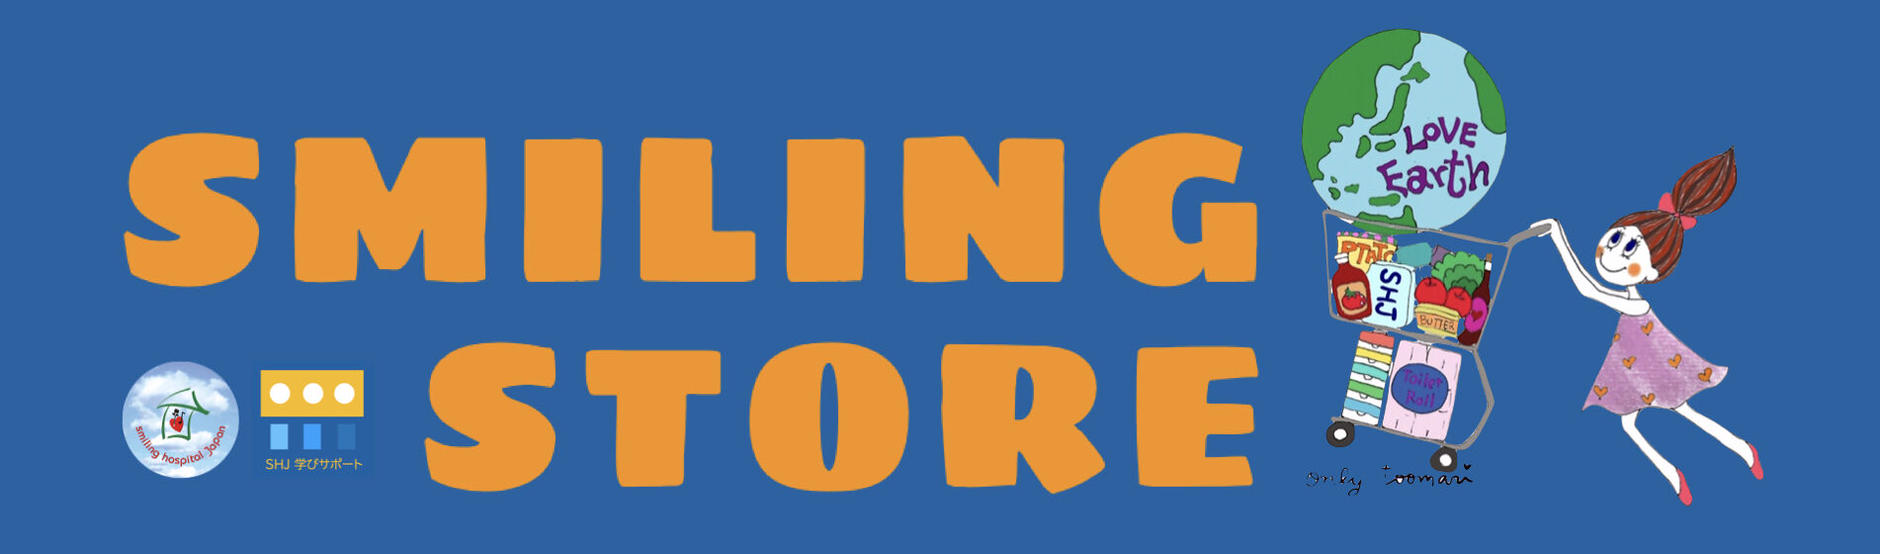 SMILING STORE